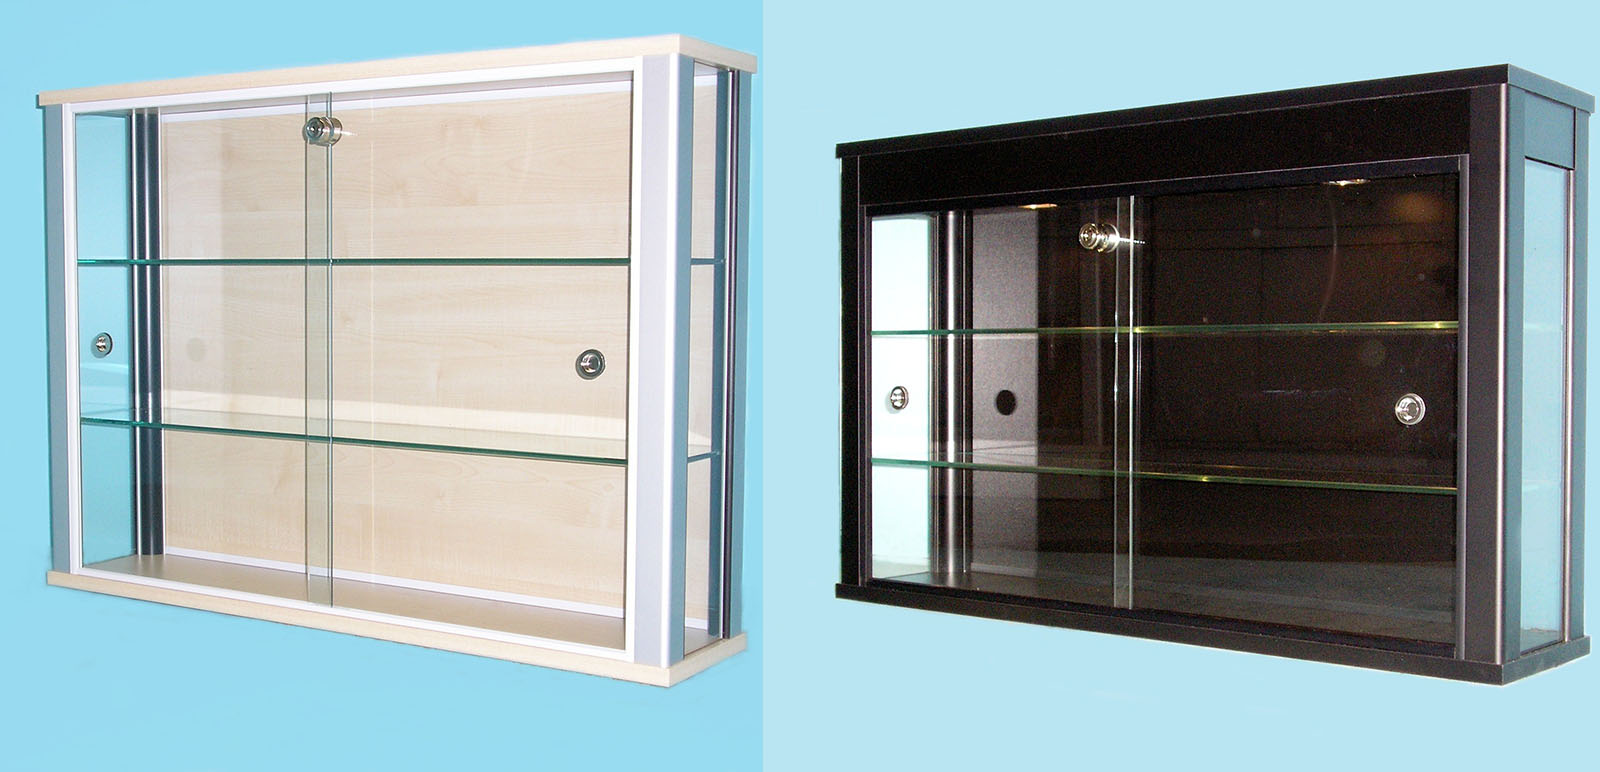 Designex Cabinets glass display wall cabinets